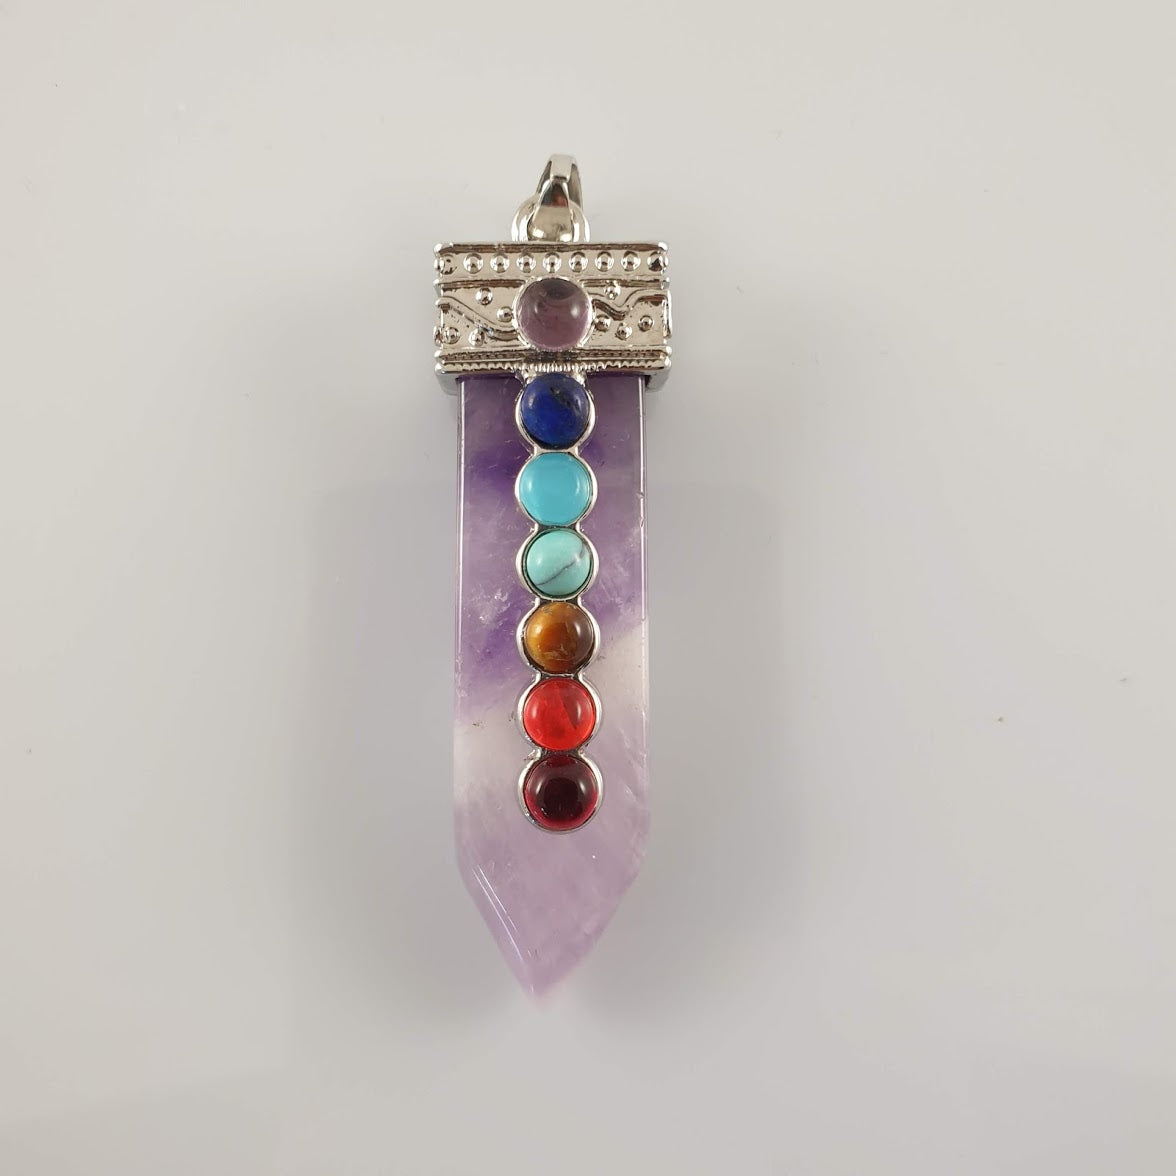 Chakra Amethyst Crystal Point Pendant - Rivendell Shop NZ